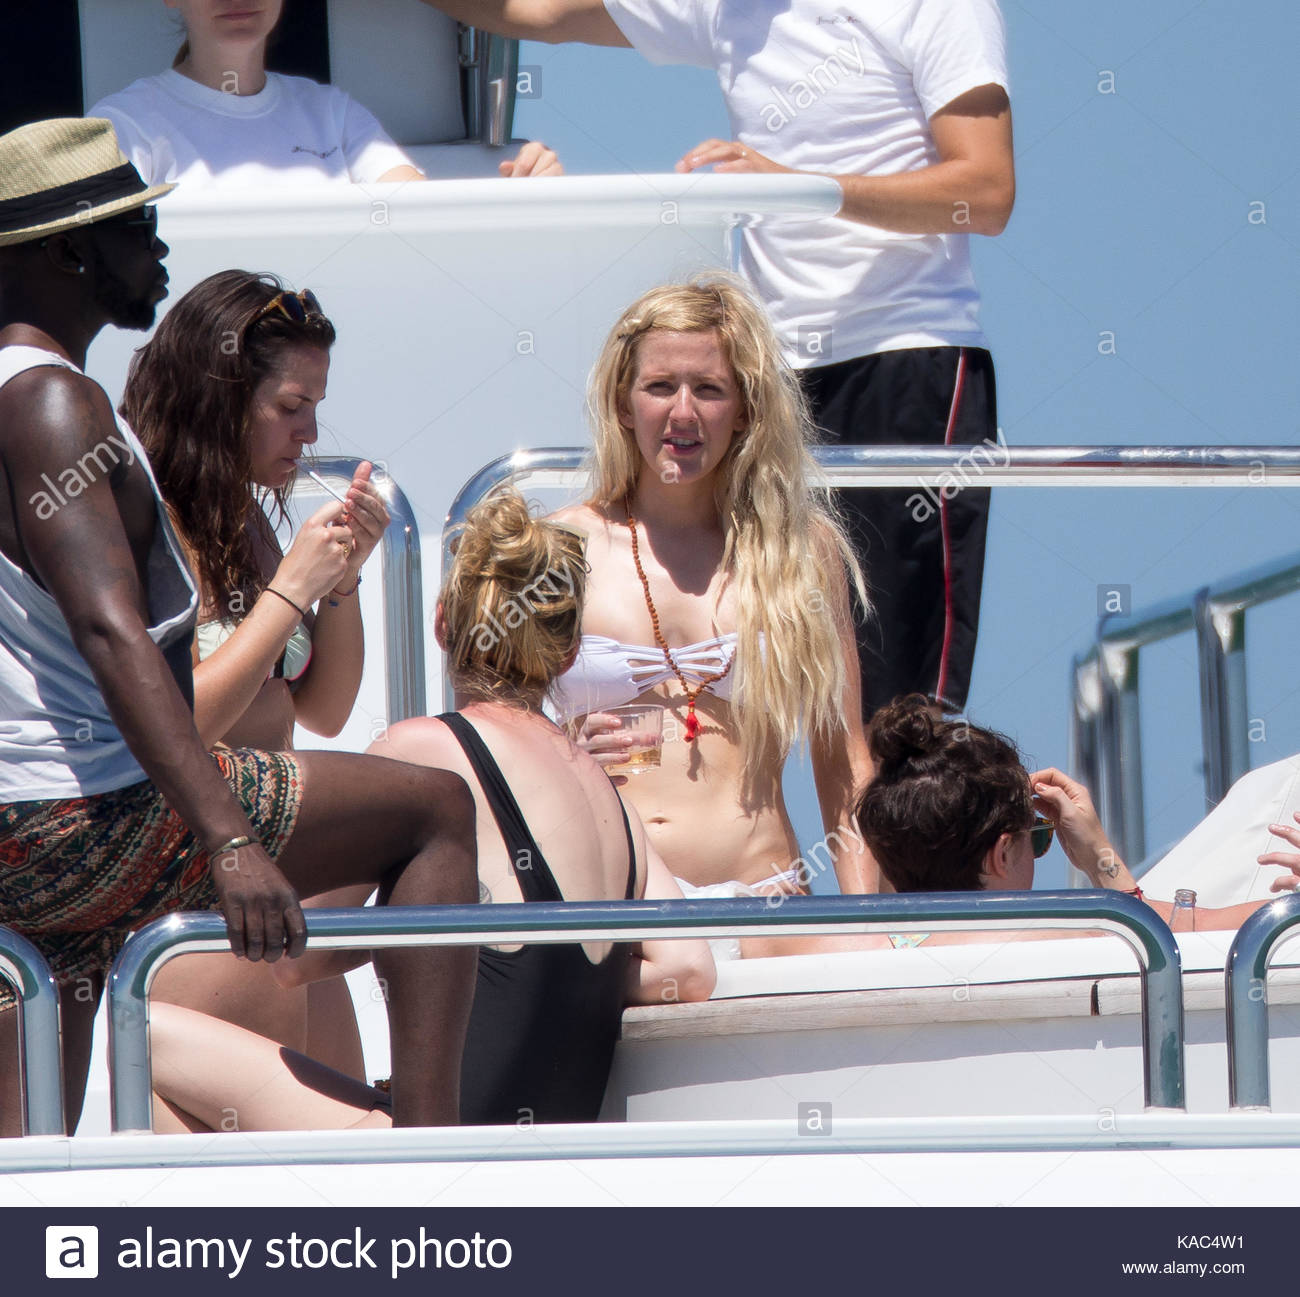 Ellie Goulding showed off her new Vegan diet bikini body as she partied on  a yacht in Miami, Florida. The 27-year-old British singer danced around  during a ...